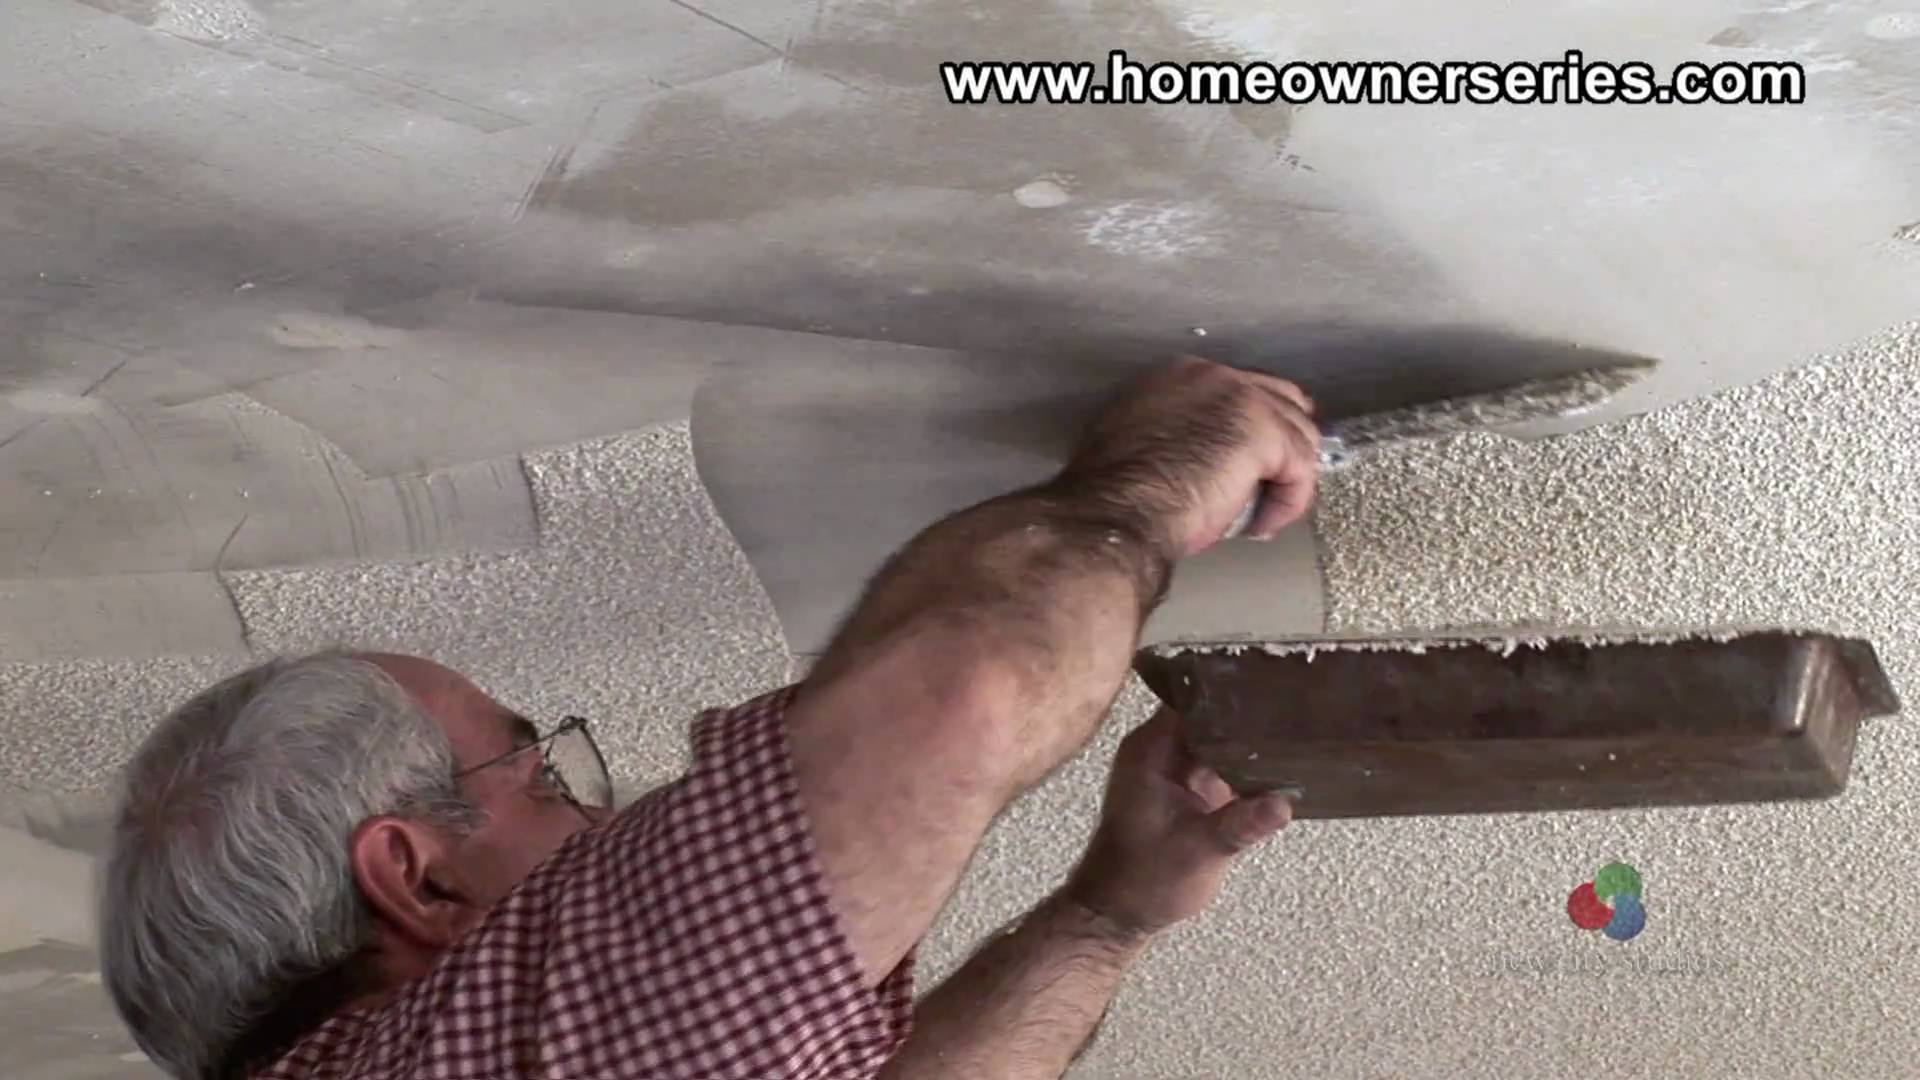 Magnificent phrase How to remove wallpaper strip apologise, but